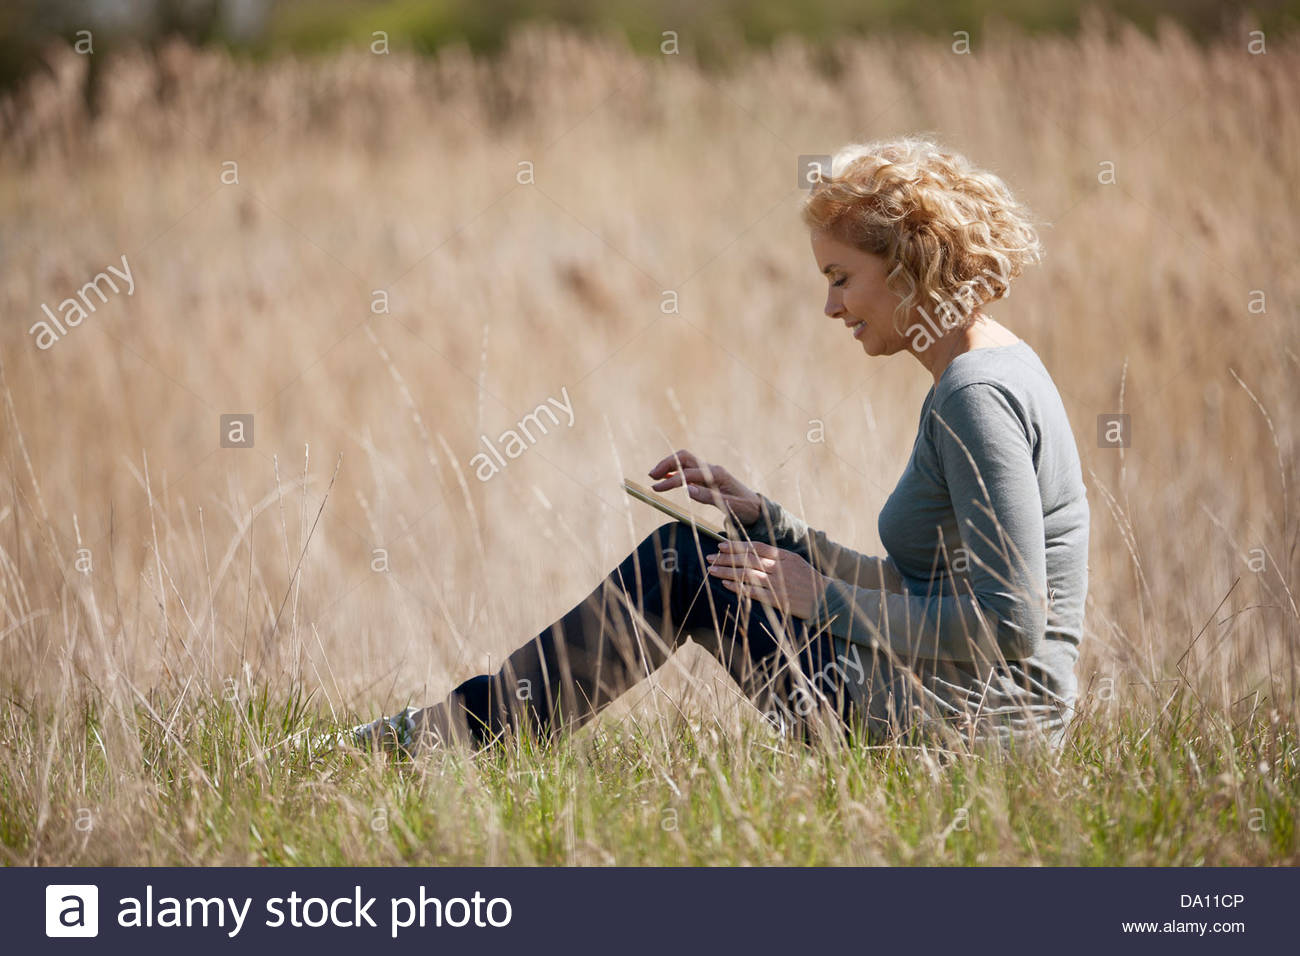 A mature woman sitting in long grass, using a digital tablet - Stock Image